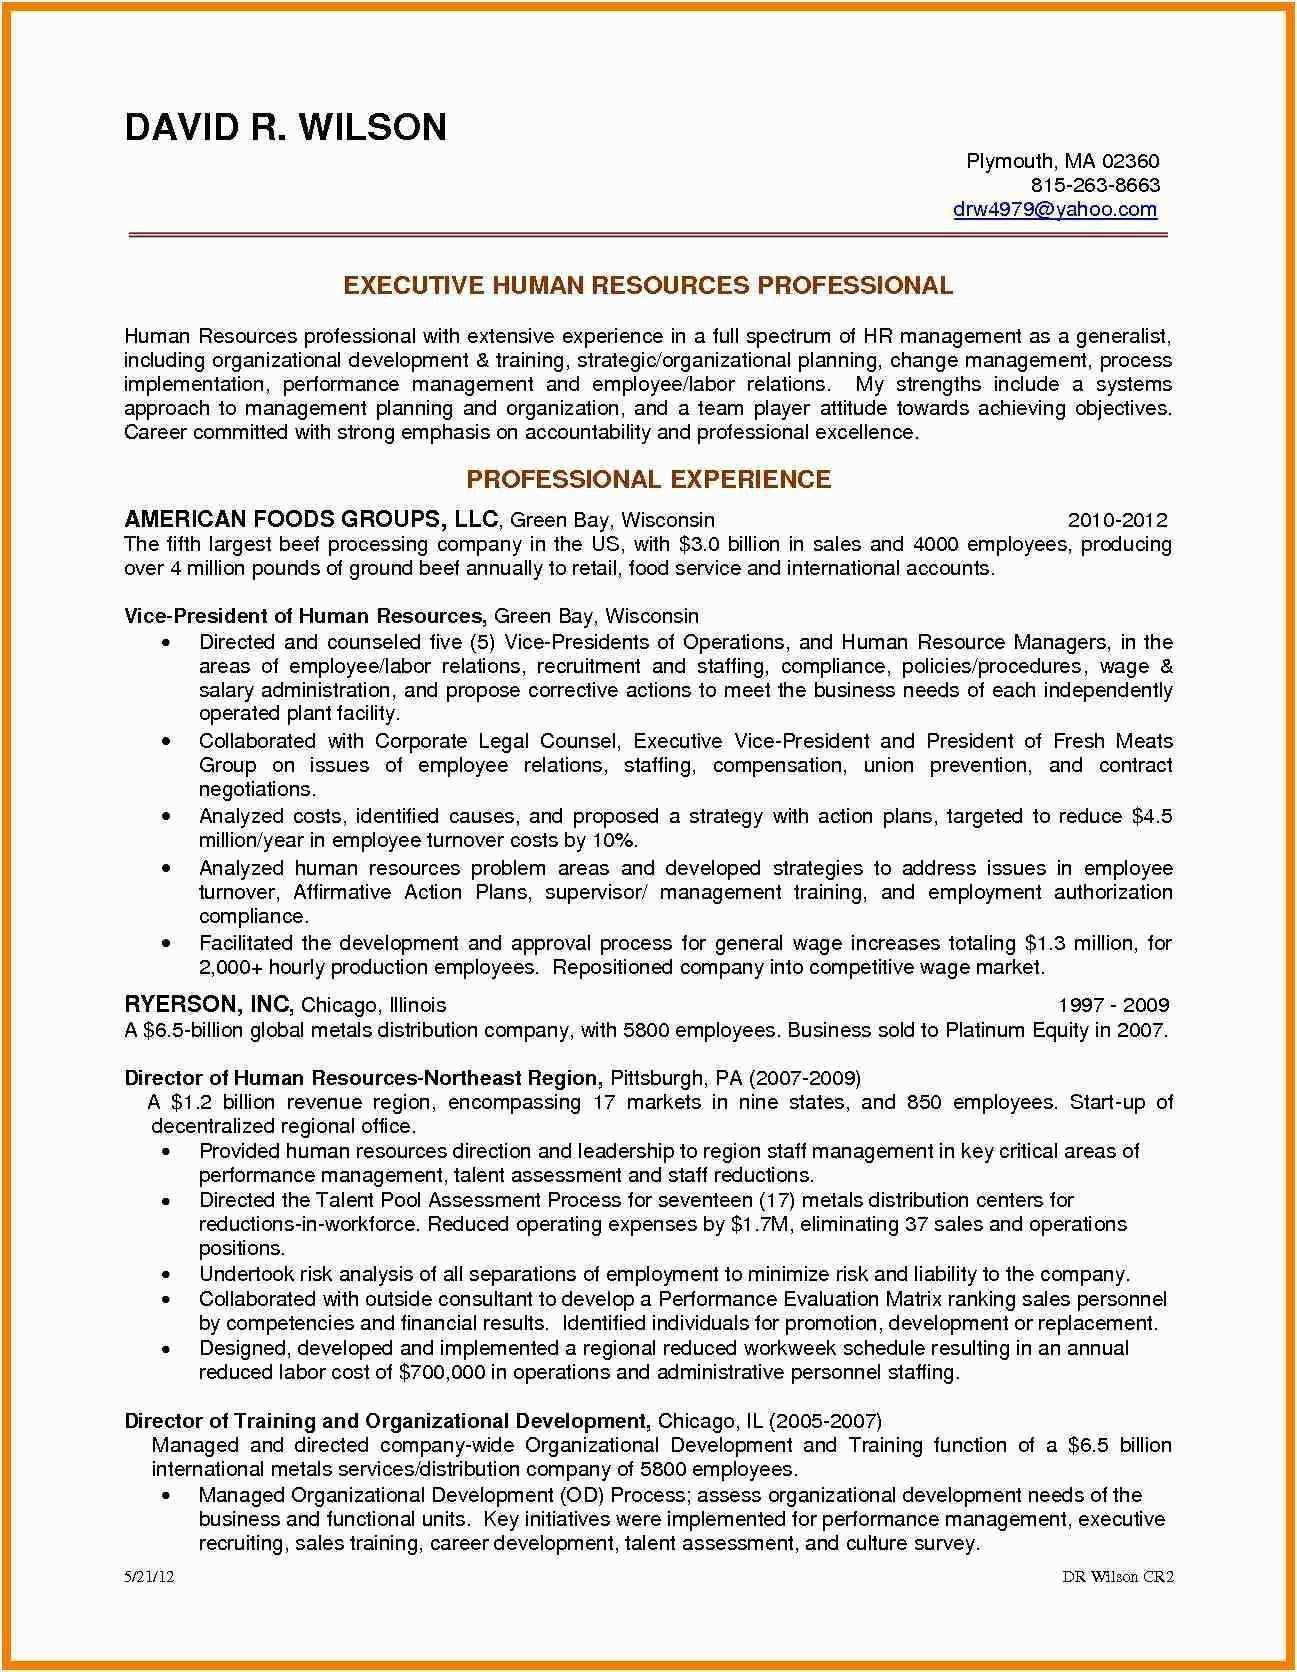 Resume Objective for Career Change Examples - Career Change Resume Templates Fresh Objective Statement Resume